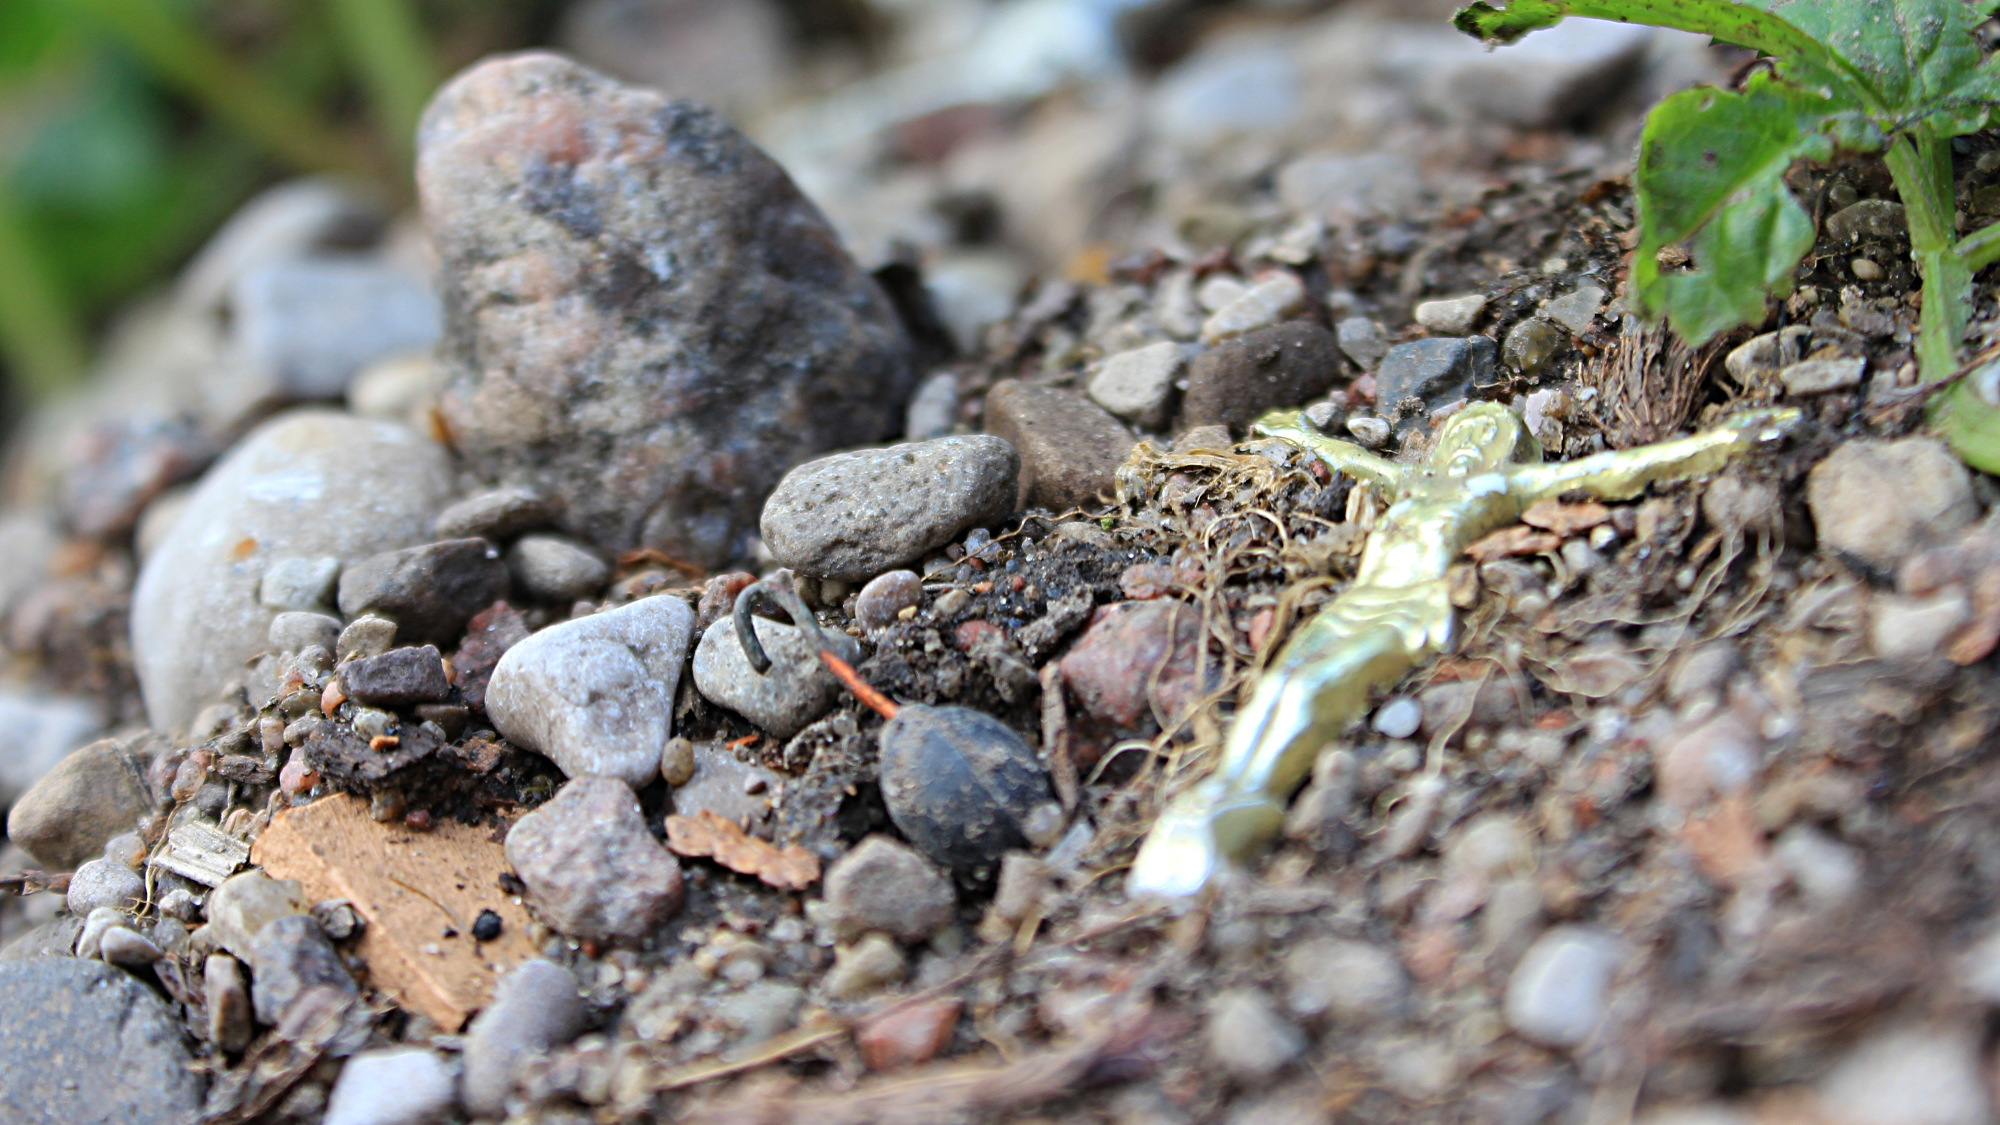 A miniature statue of Jesus lying on the ground beside small rocks.